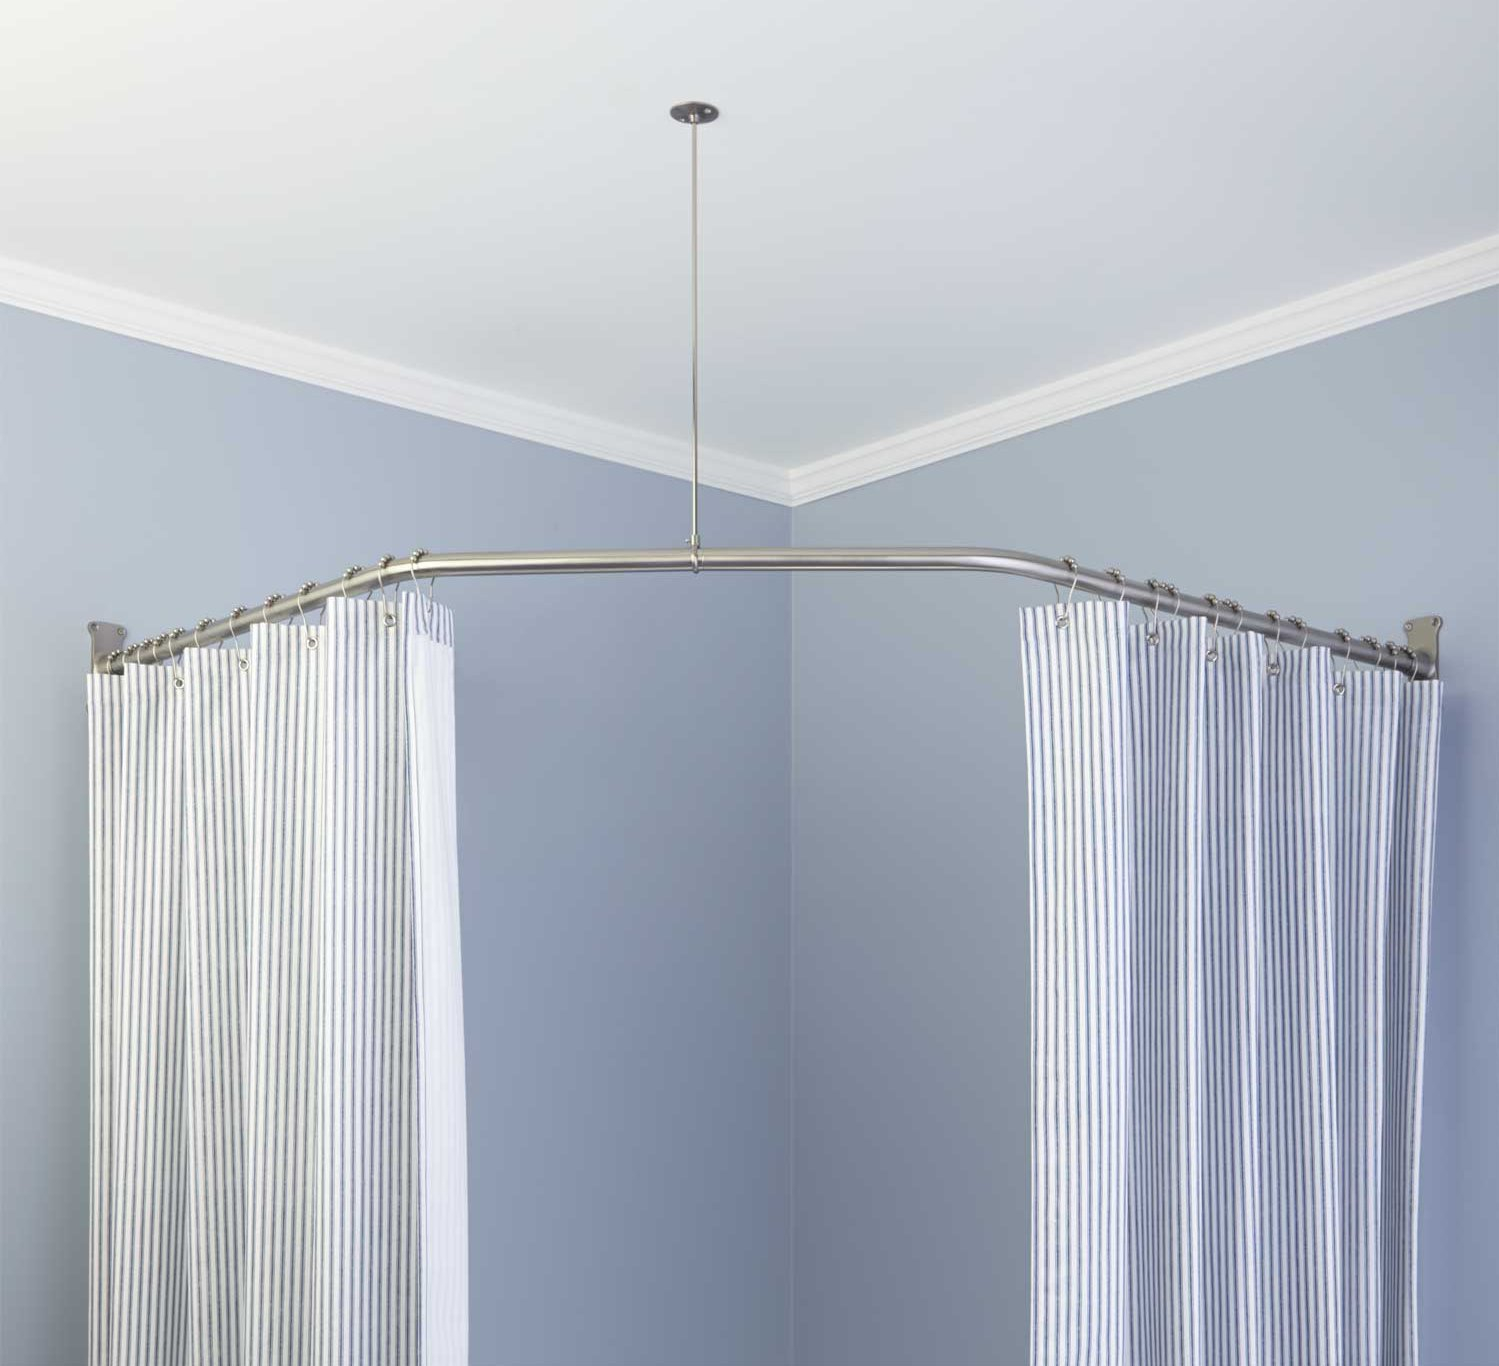 Stainless Steel L Shaped Shower Curtain Rod • Shower Curtains Ideas